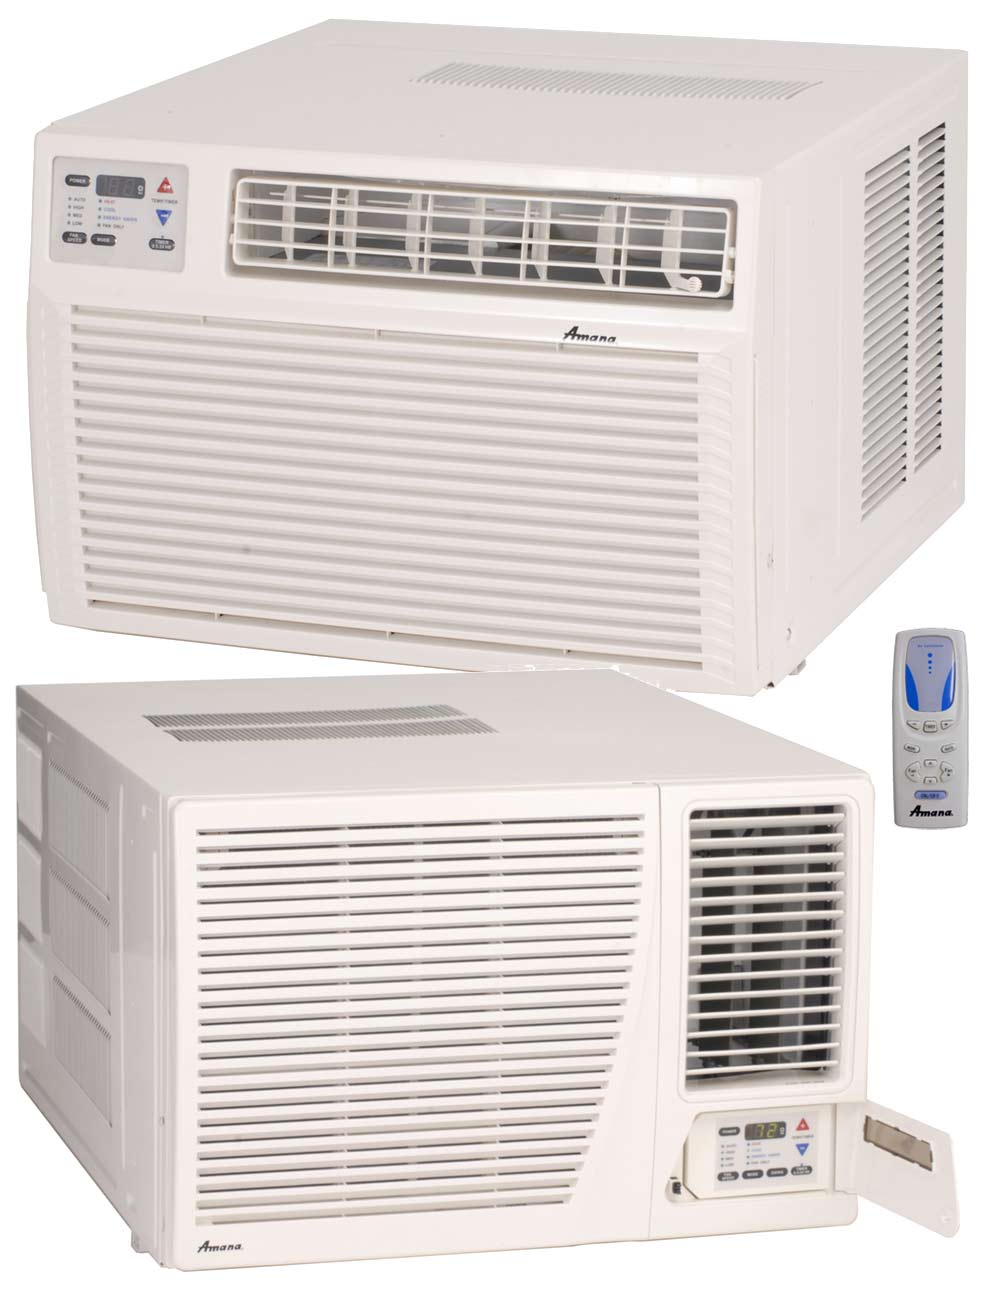 A h heating air conditioning service - A H Heating Air Conditioning Service 3